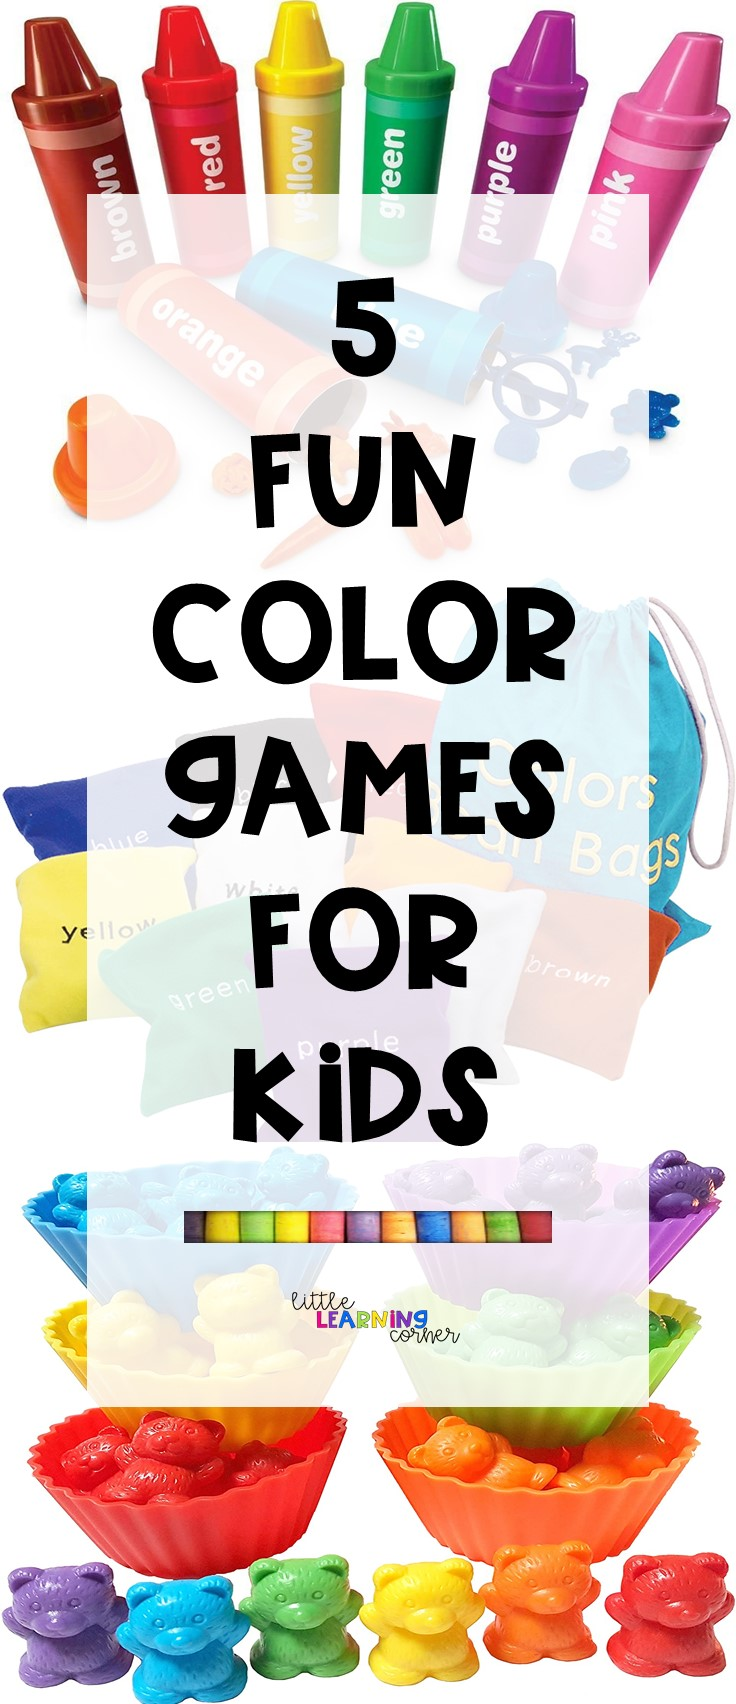 color-games-for-kids-pin